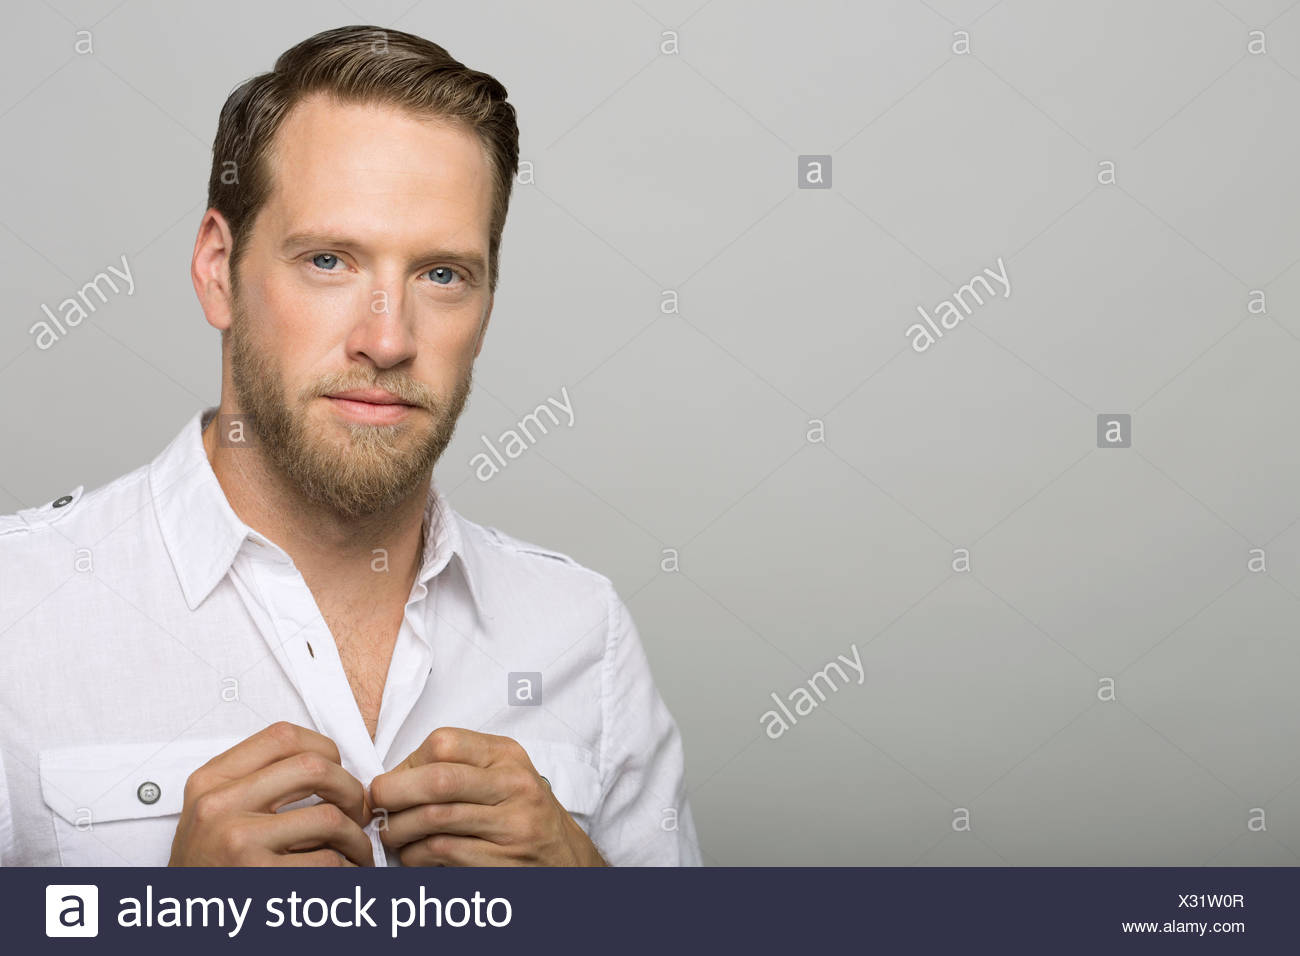 Portrait of confident man buttoning shirt - Stock Image